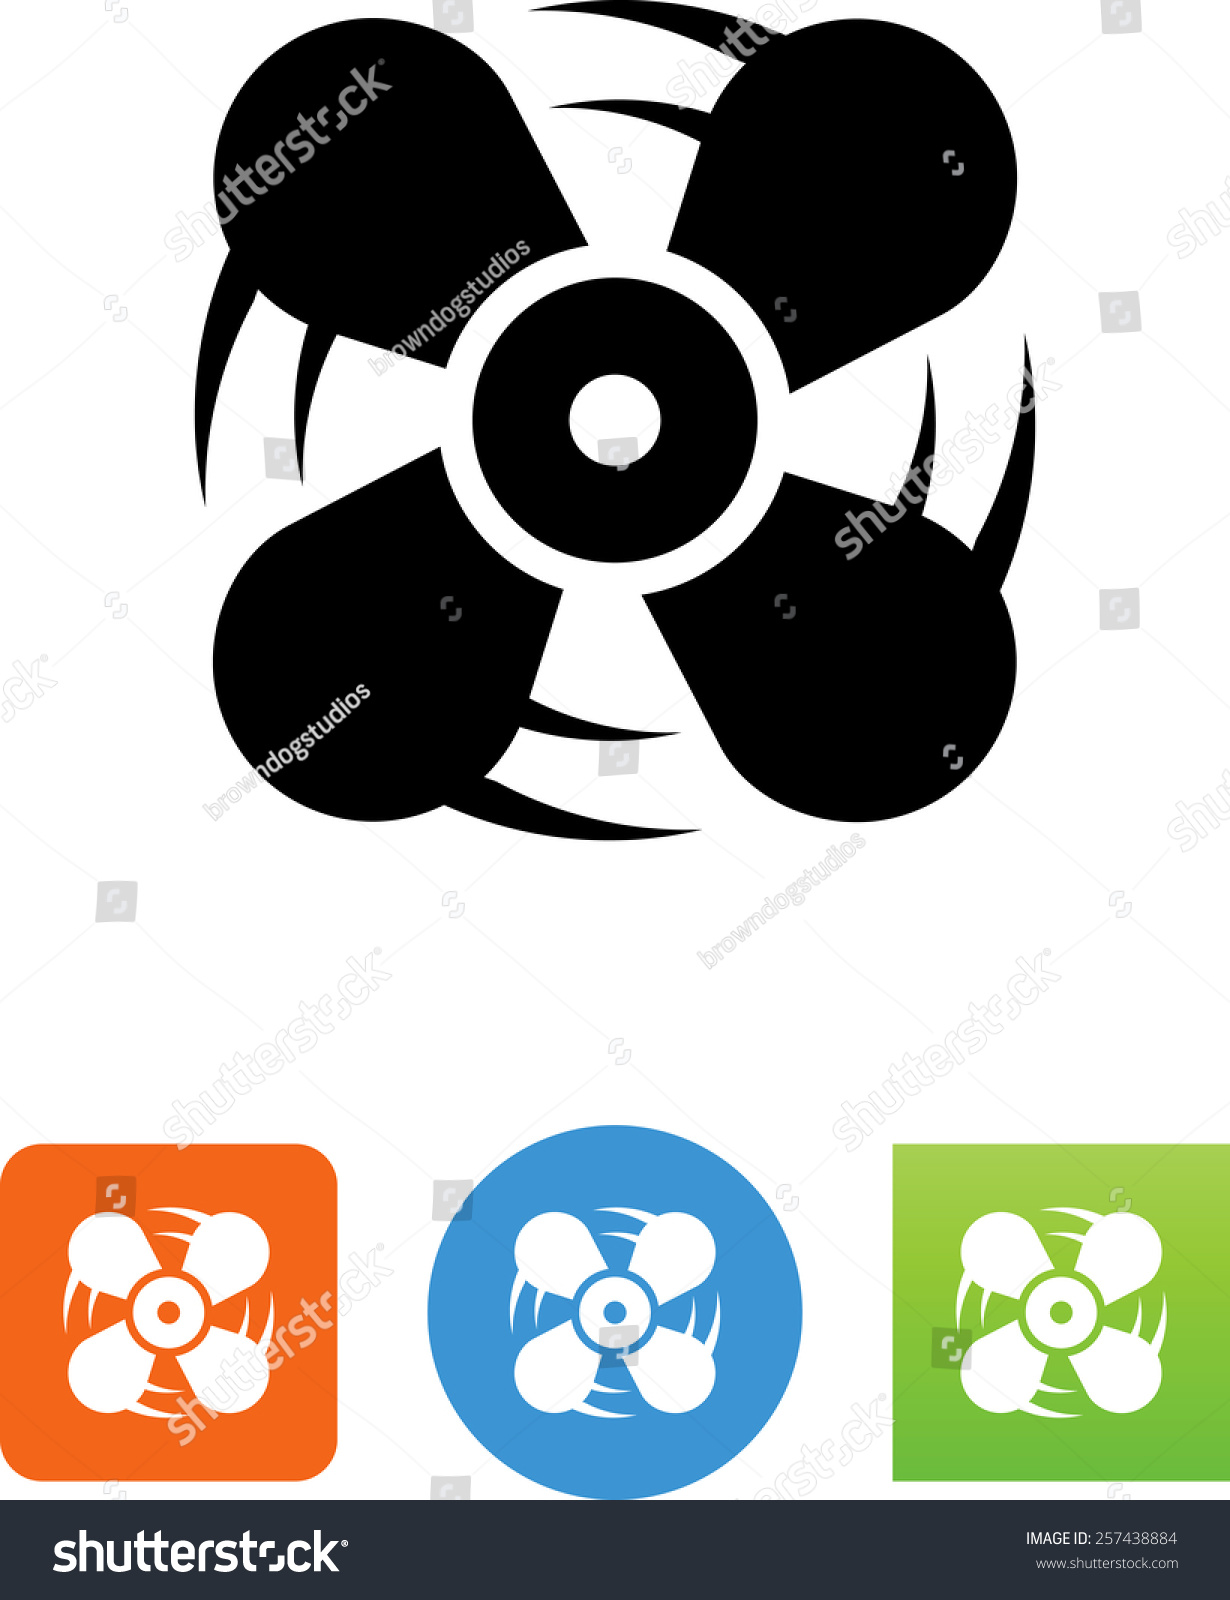 Symbool Ventilator Fan Symbol For Download Vector Icons For Video Mobile